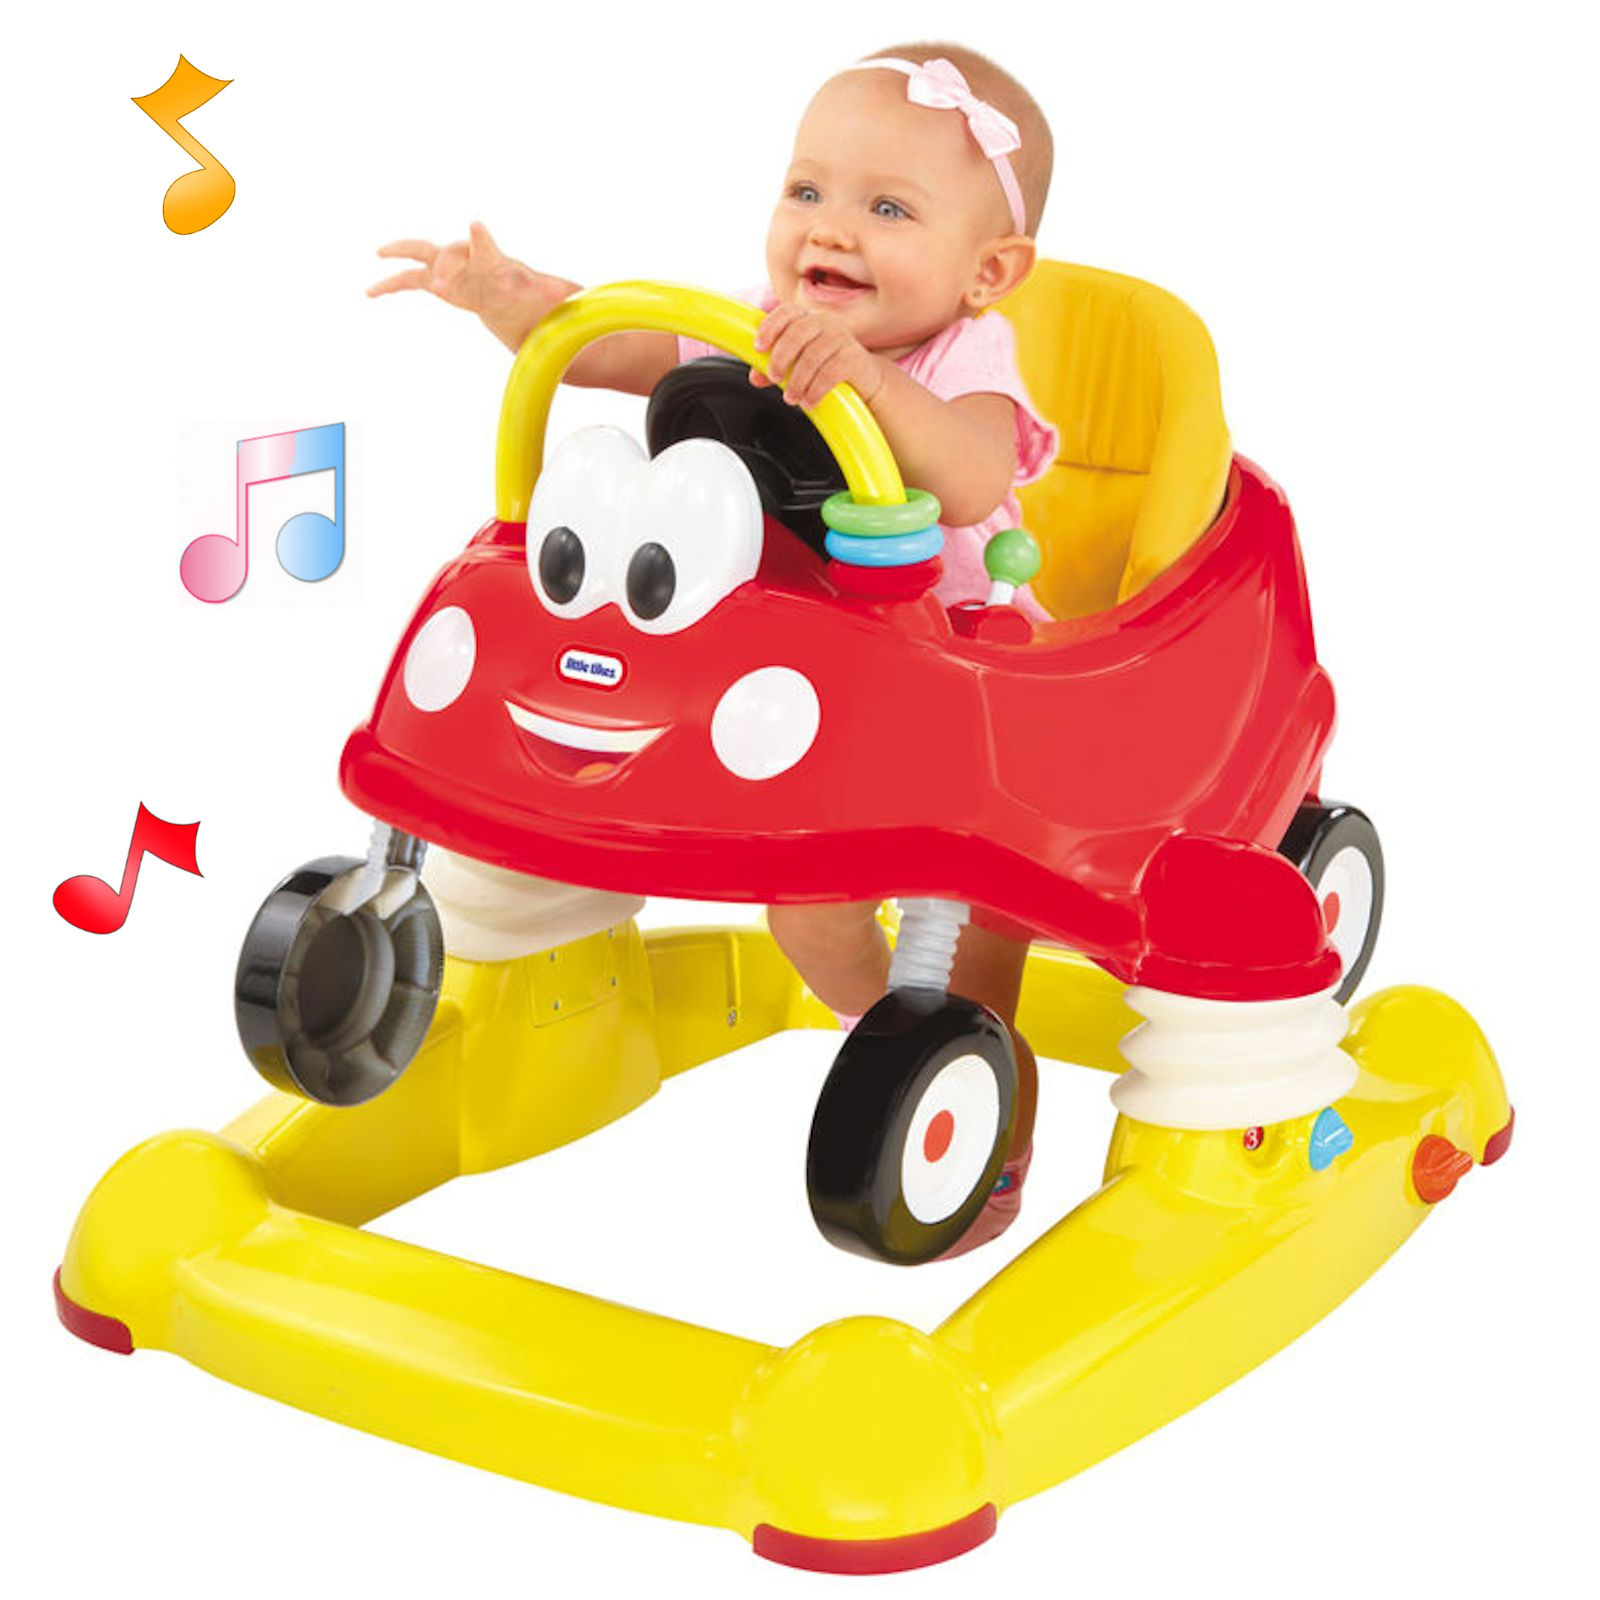 Little Tikes 3in1 Luxury Cozy Coupe Musical Walker Entertainer